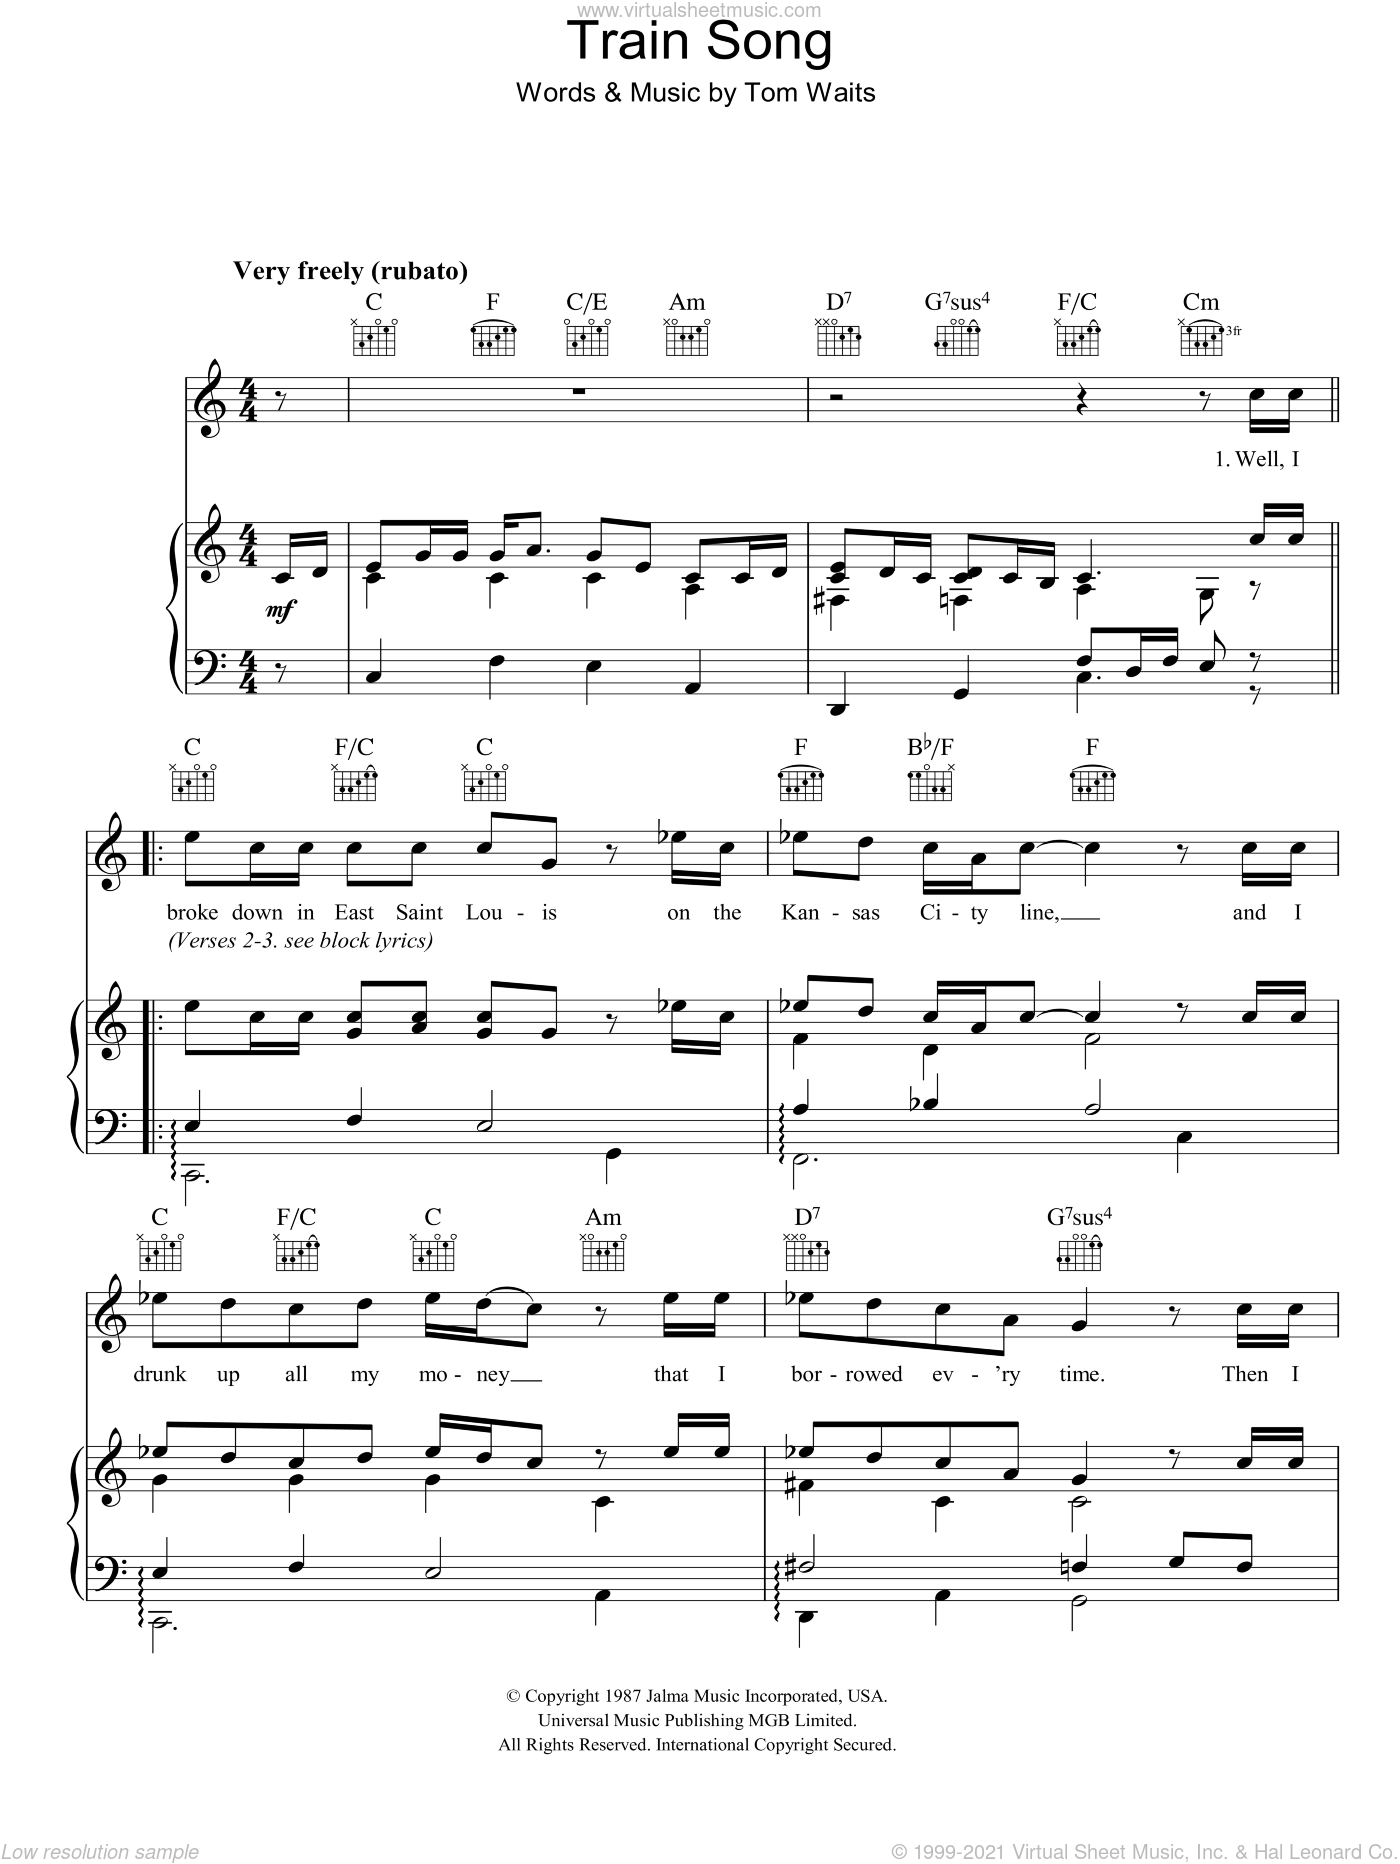 Train Song sheet music for voice, piano or guitar by Tom Waits, intermediate skill level